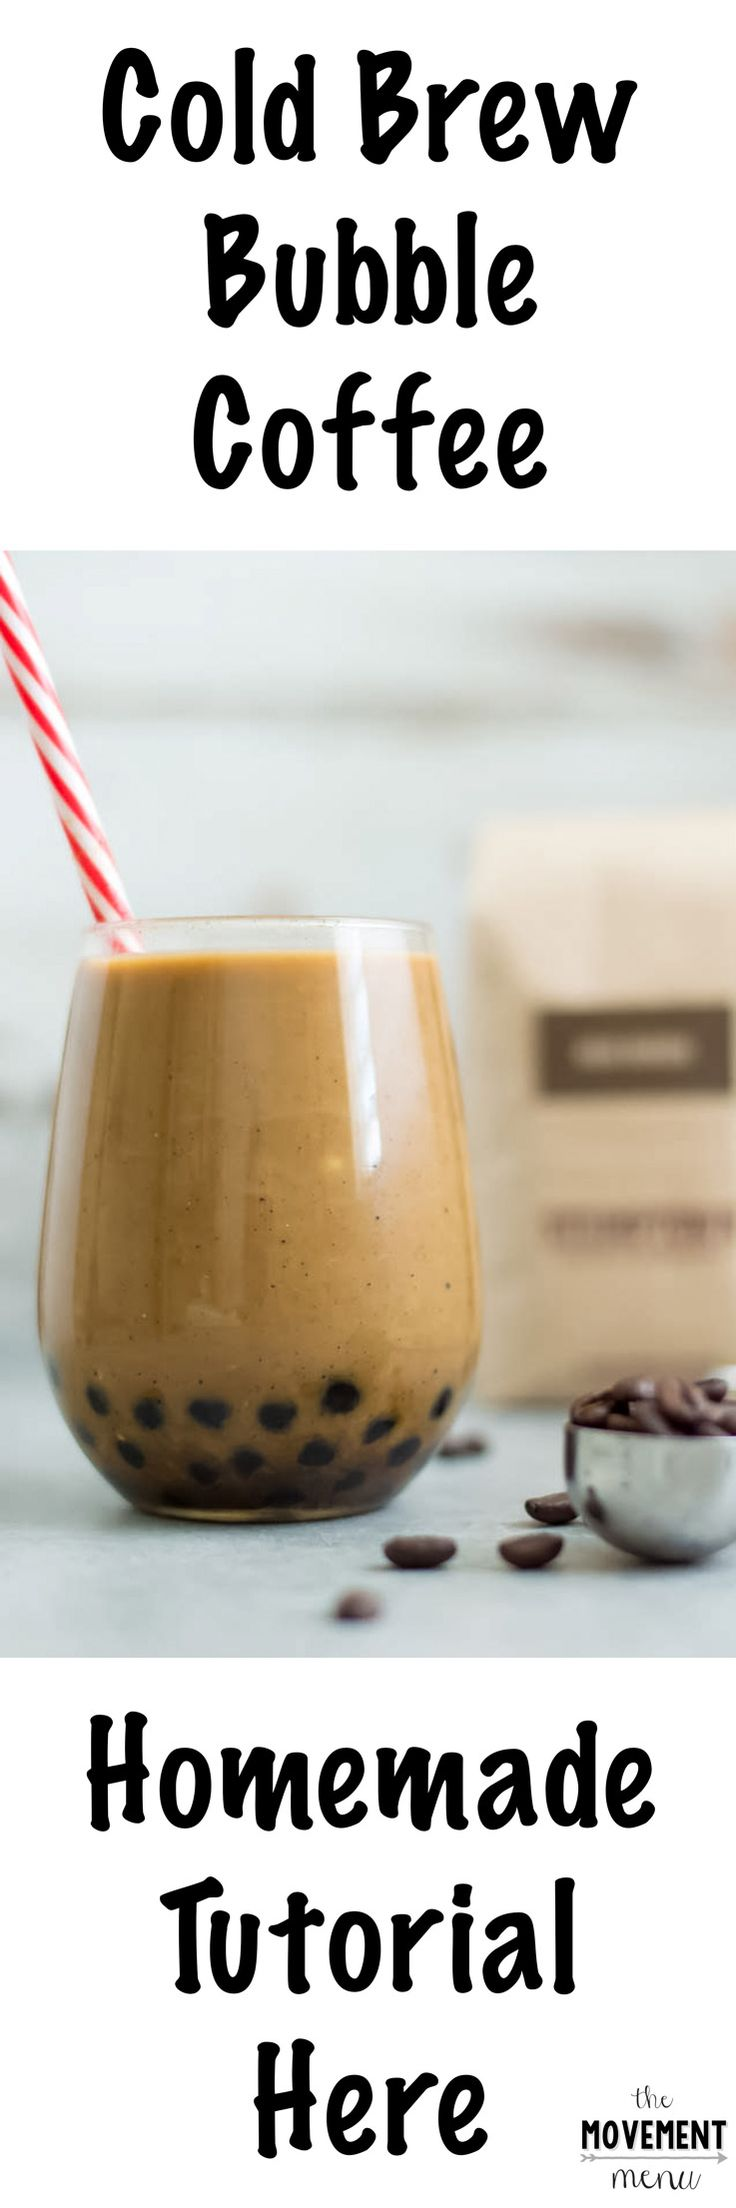 A homemade boba and cold brew recipe, without the junky simple syrup at cafes. The boba is soaked in a coconut sugar syrup!